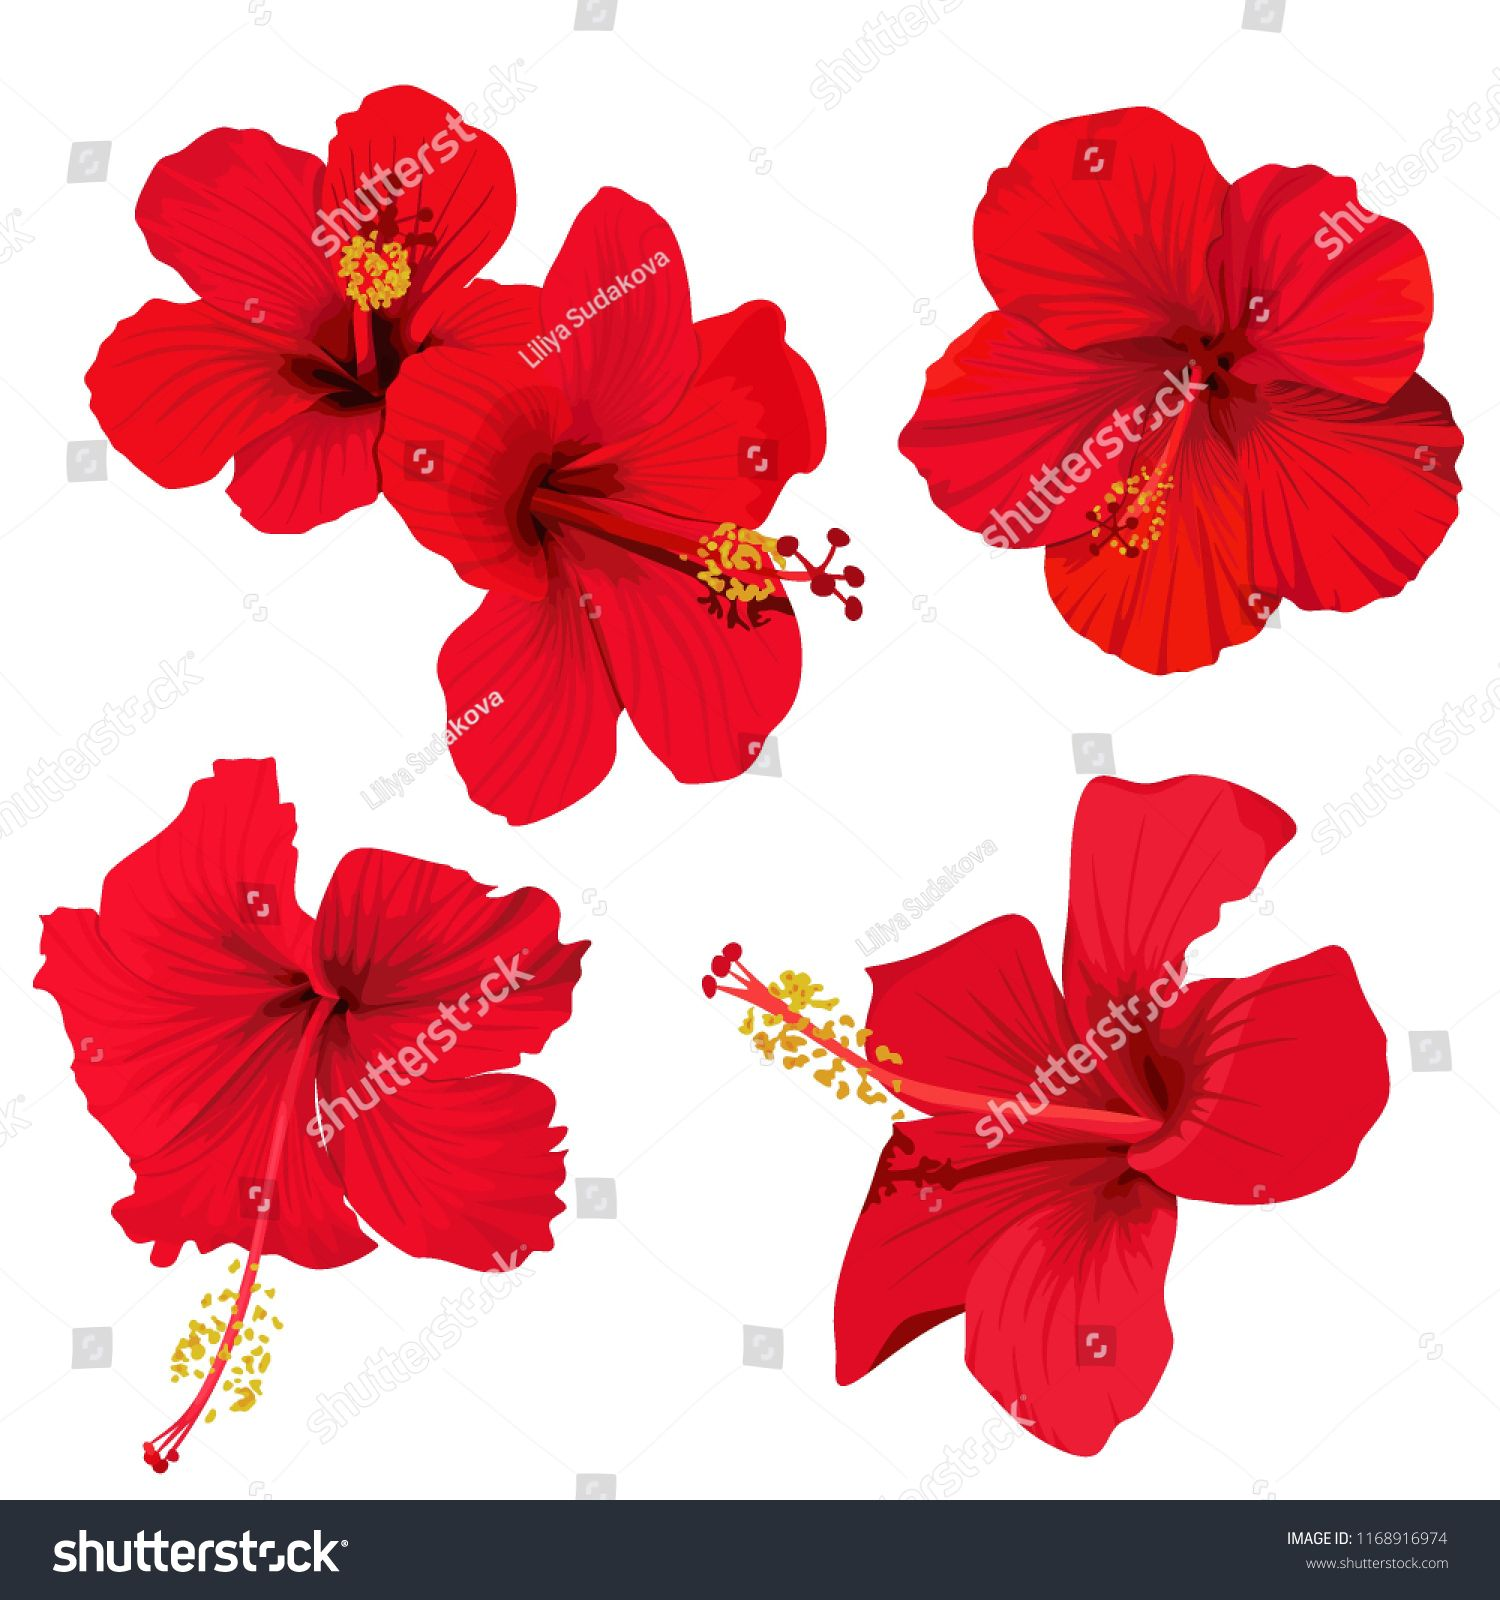 Hibiscus Flower Vector Clip Art Set Of 5 Red Flowers Tropical Planrs Sponsored Ad Clip Art Vector Hi Art Set Hibiscus Flowers Graphic Design Illustration